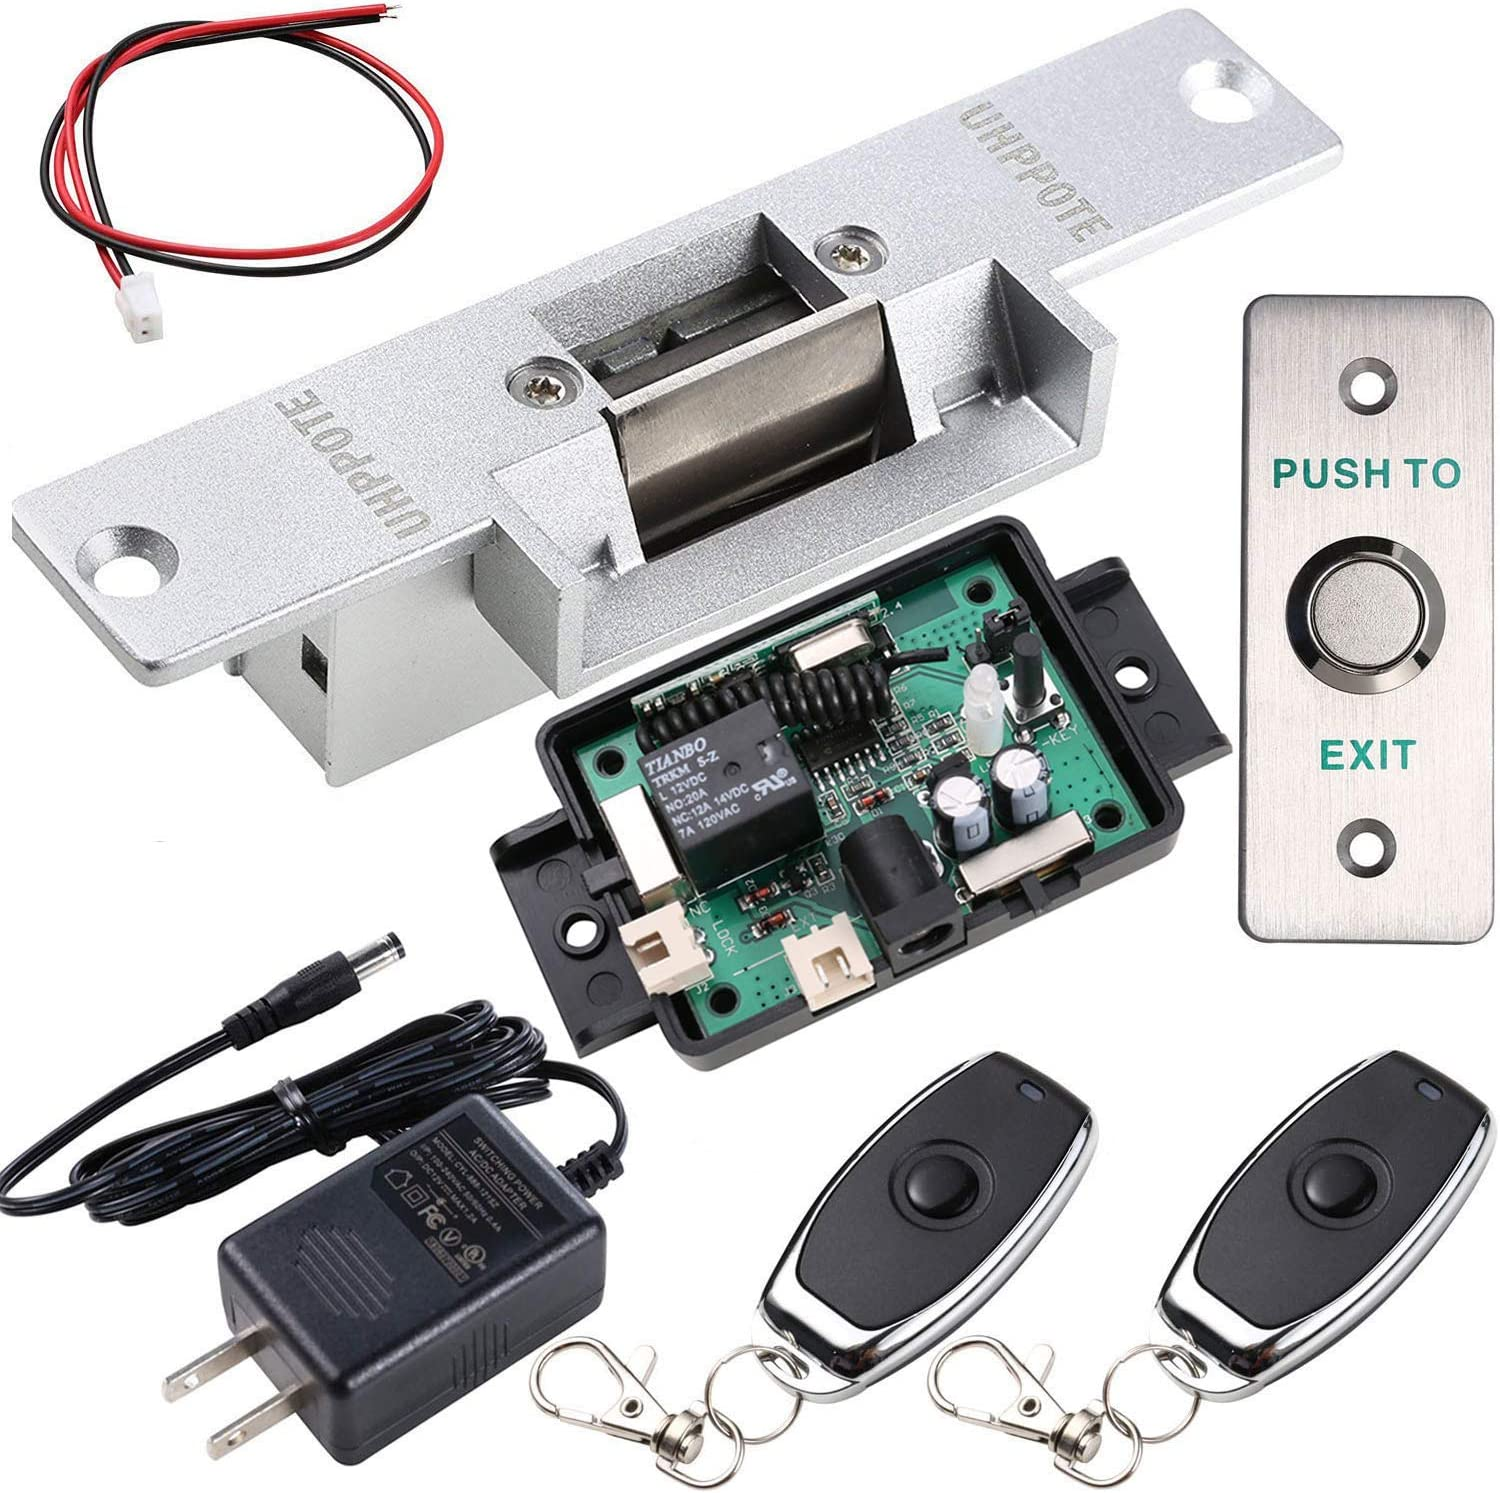 UHPPOTE Door Access Control Kit with Electric Strike Lock Remote Control